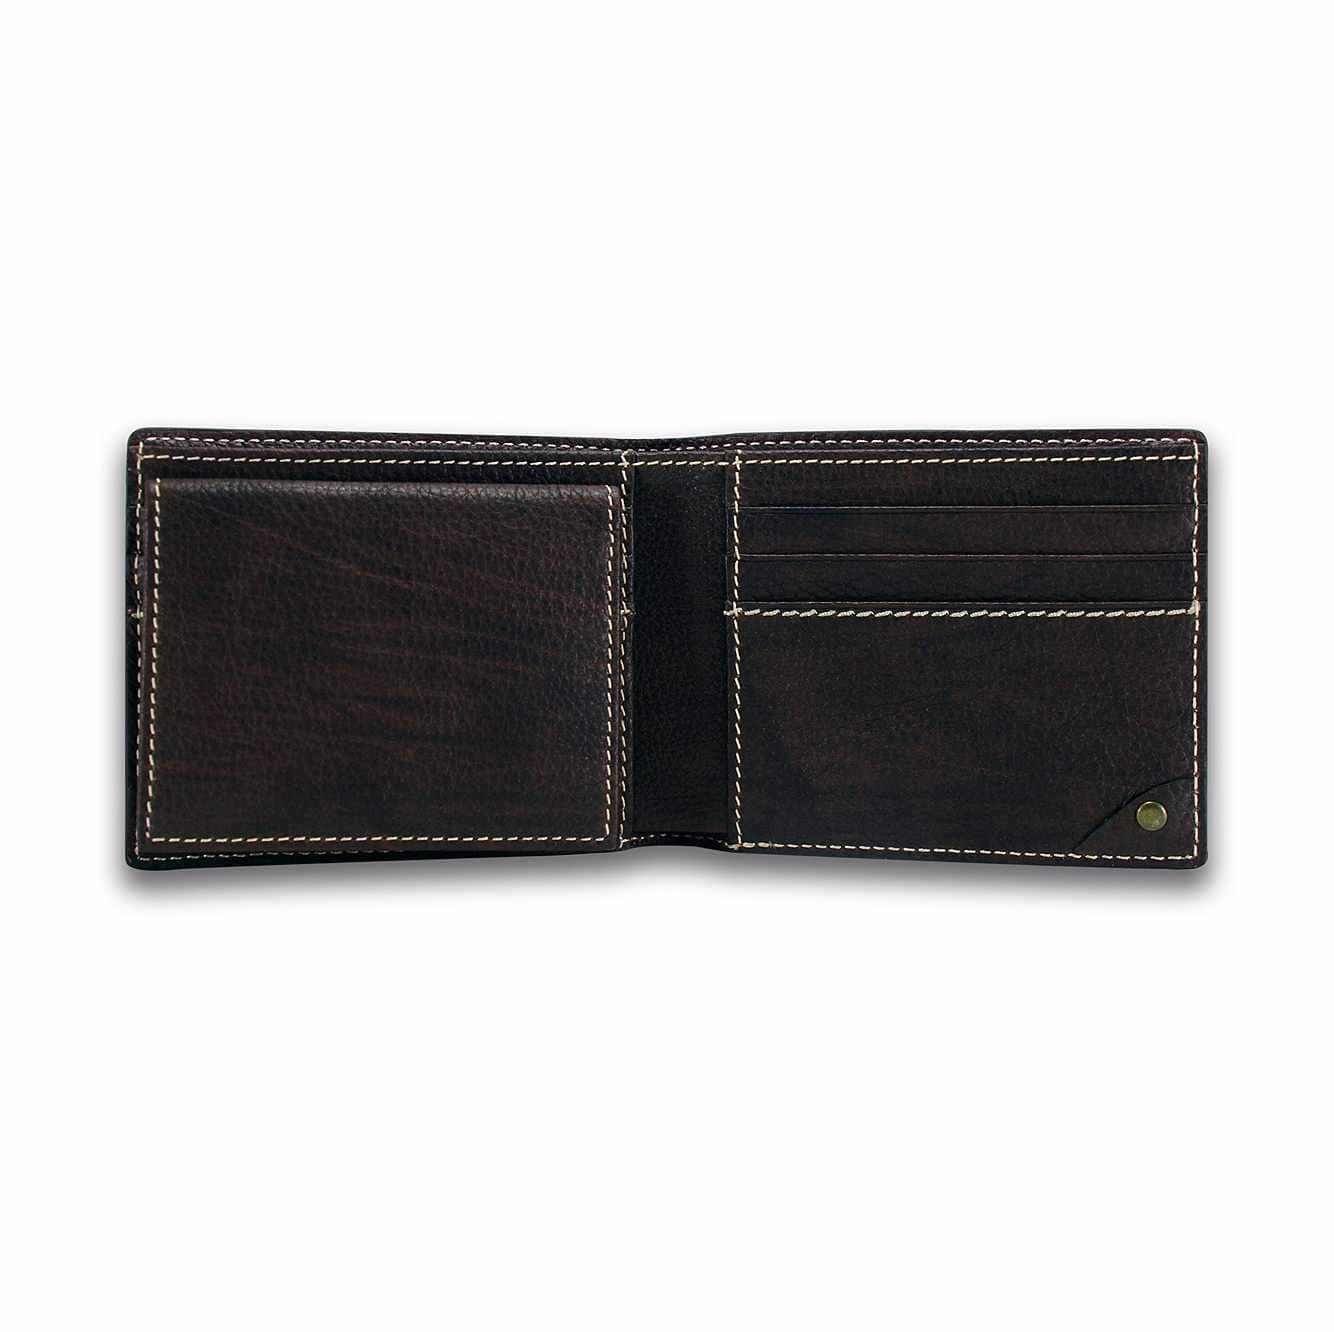 Picture of Passcase Wallet in Carhartt Brown